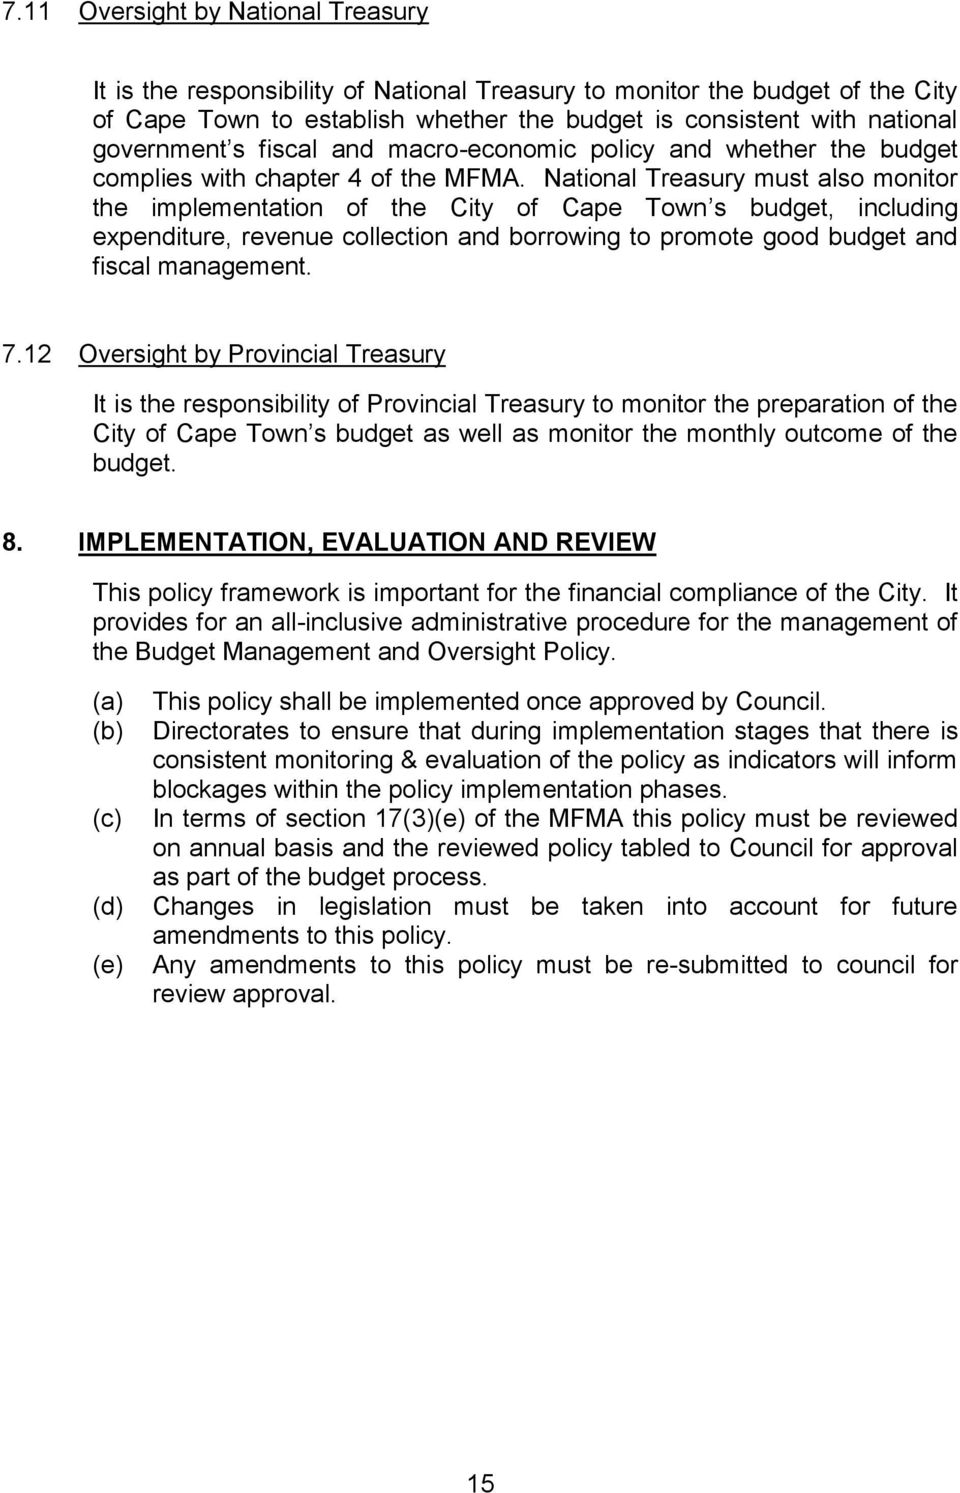 National Treasury must also monitor the implementation of the City of Cape Town s budget, including expenditure, revenue collection and borrowing to promote good budget and fiscal management. 7.